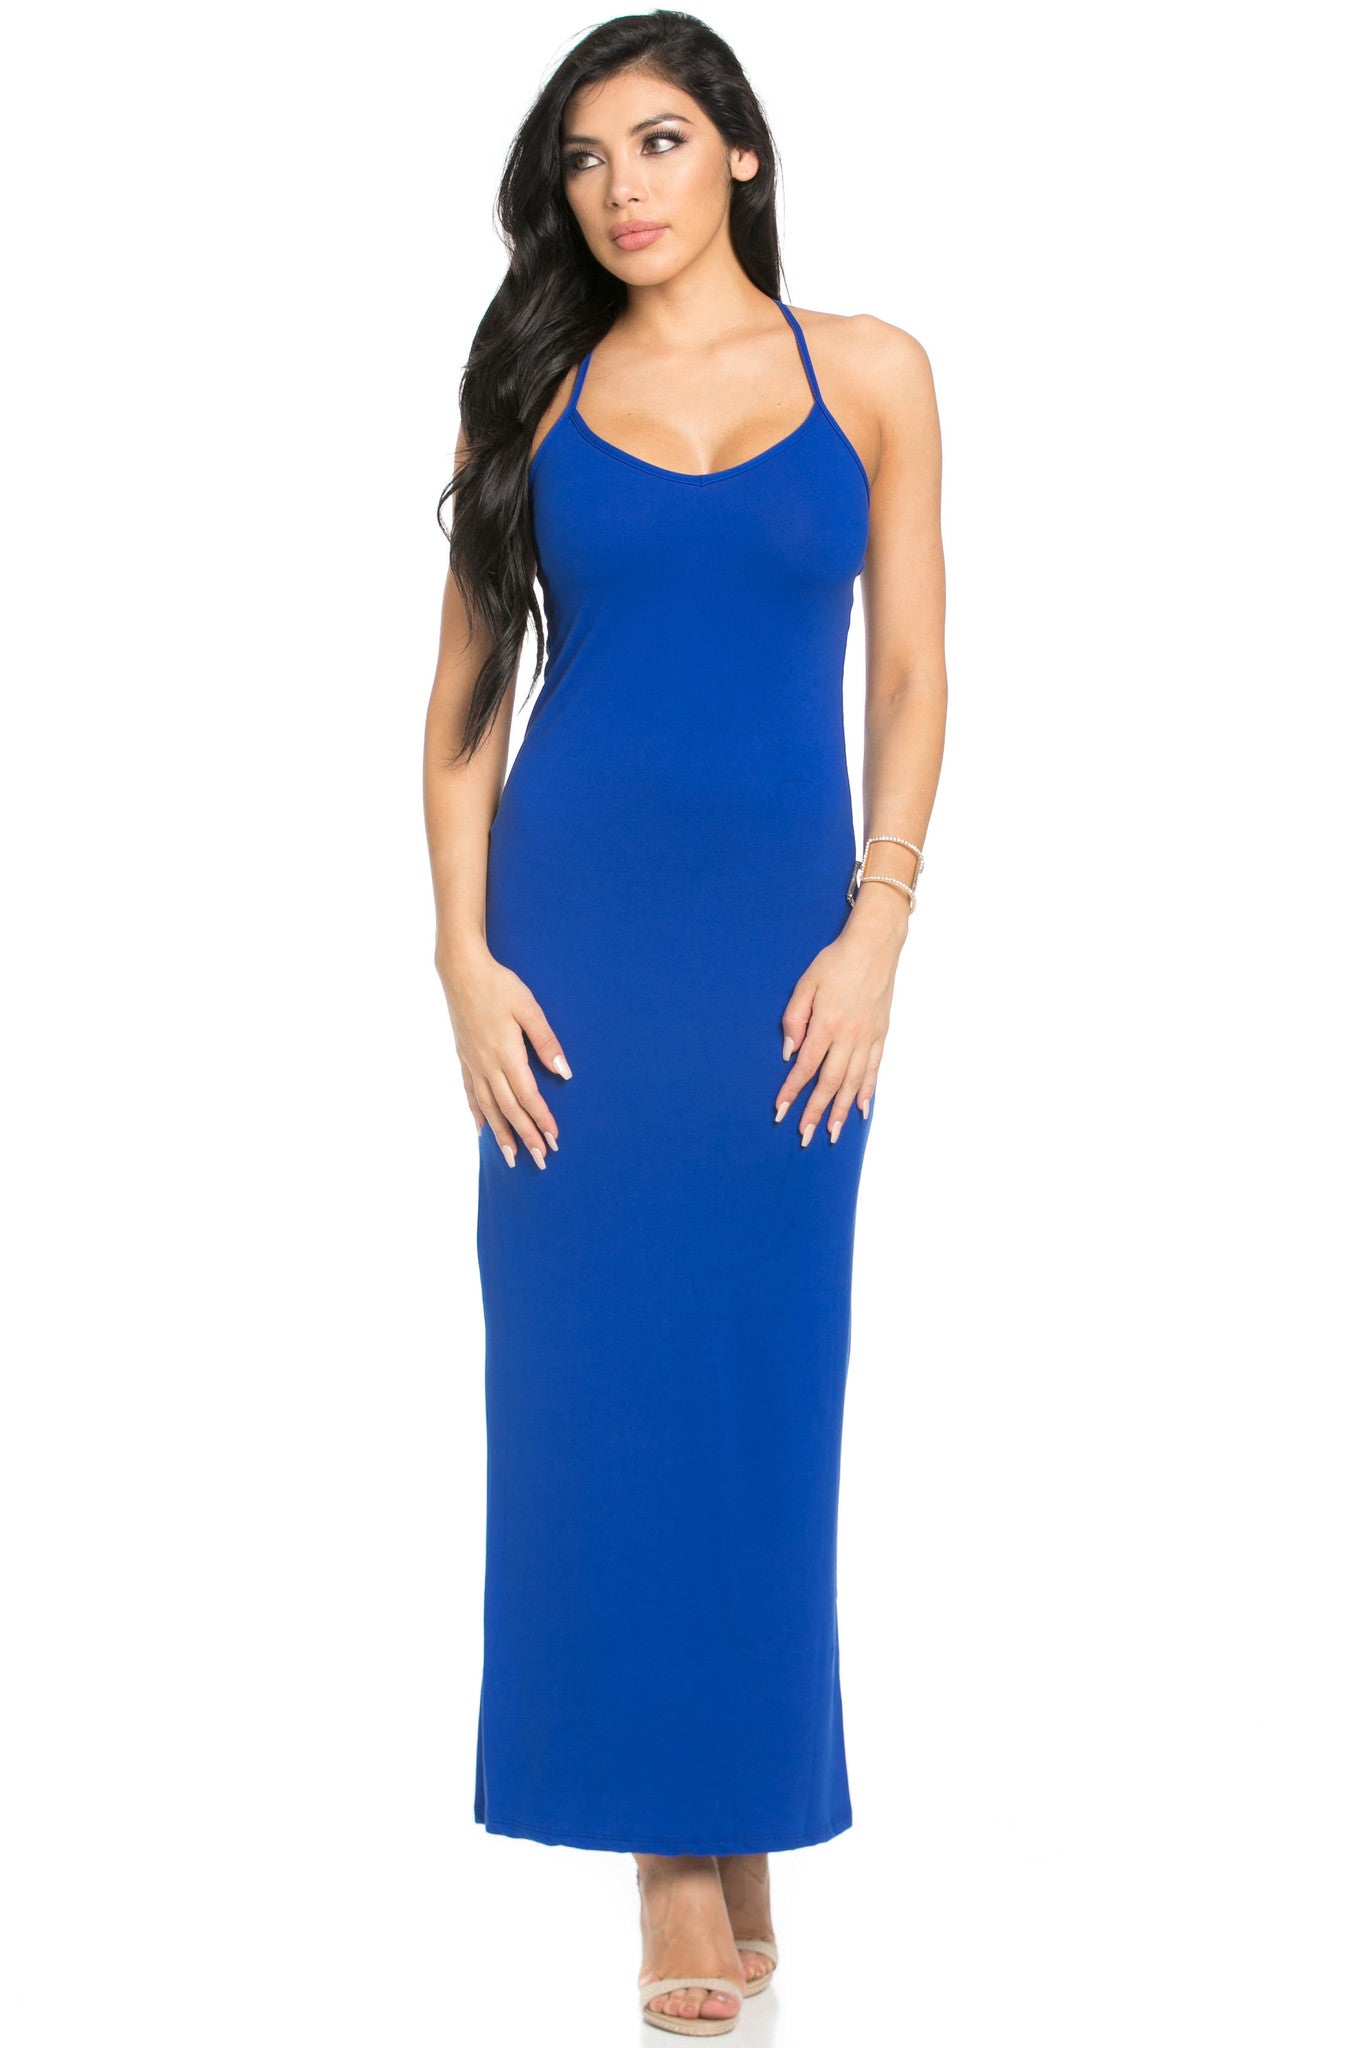 Micro Suede Royal Blue Maxi Dress - Dresses - My Yuccie - 4